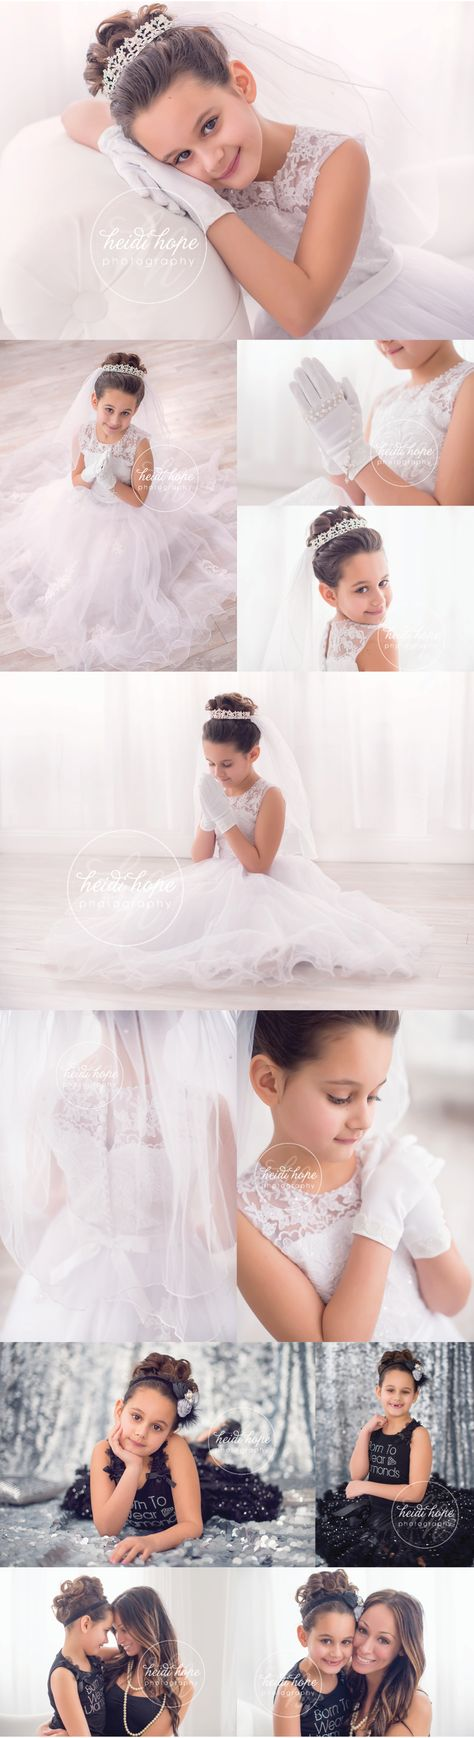 60 First Communion Photos Ideas First Communion Communion Communion Portraits